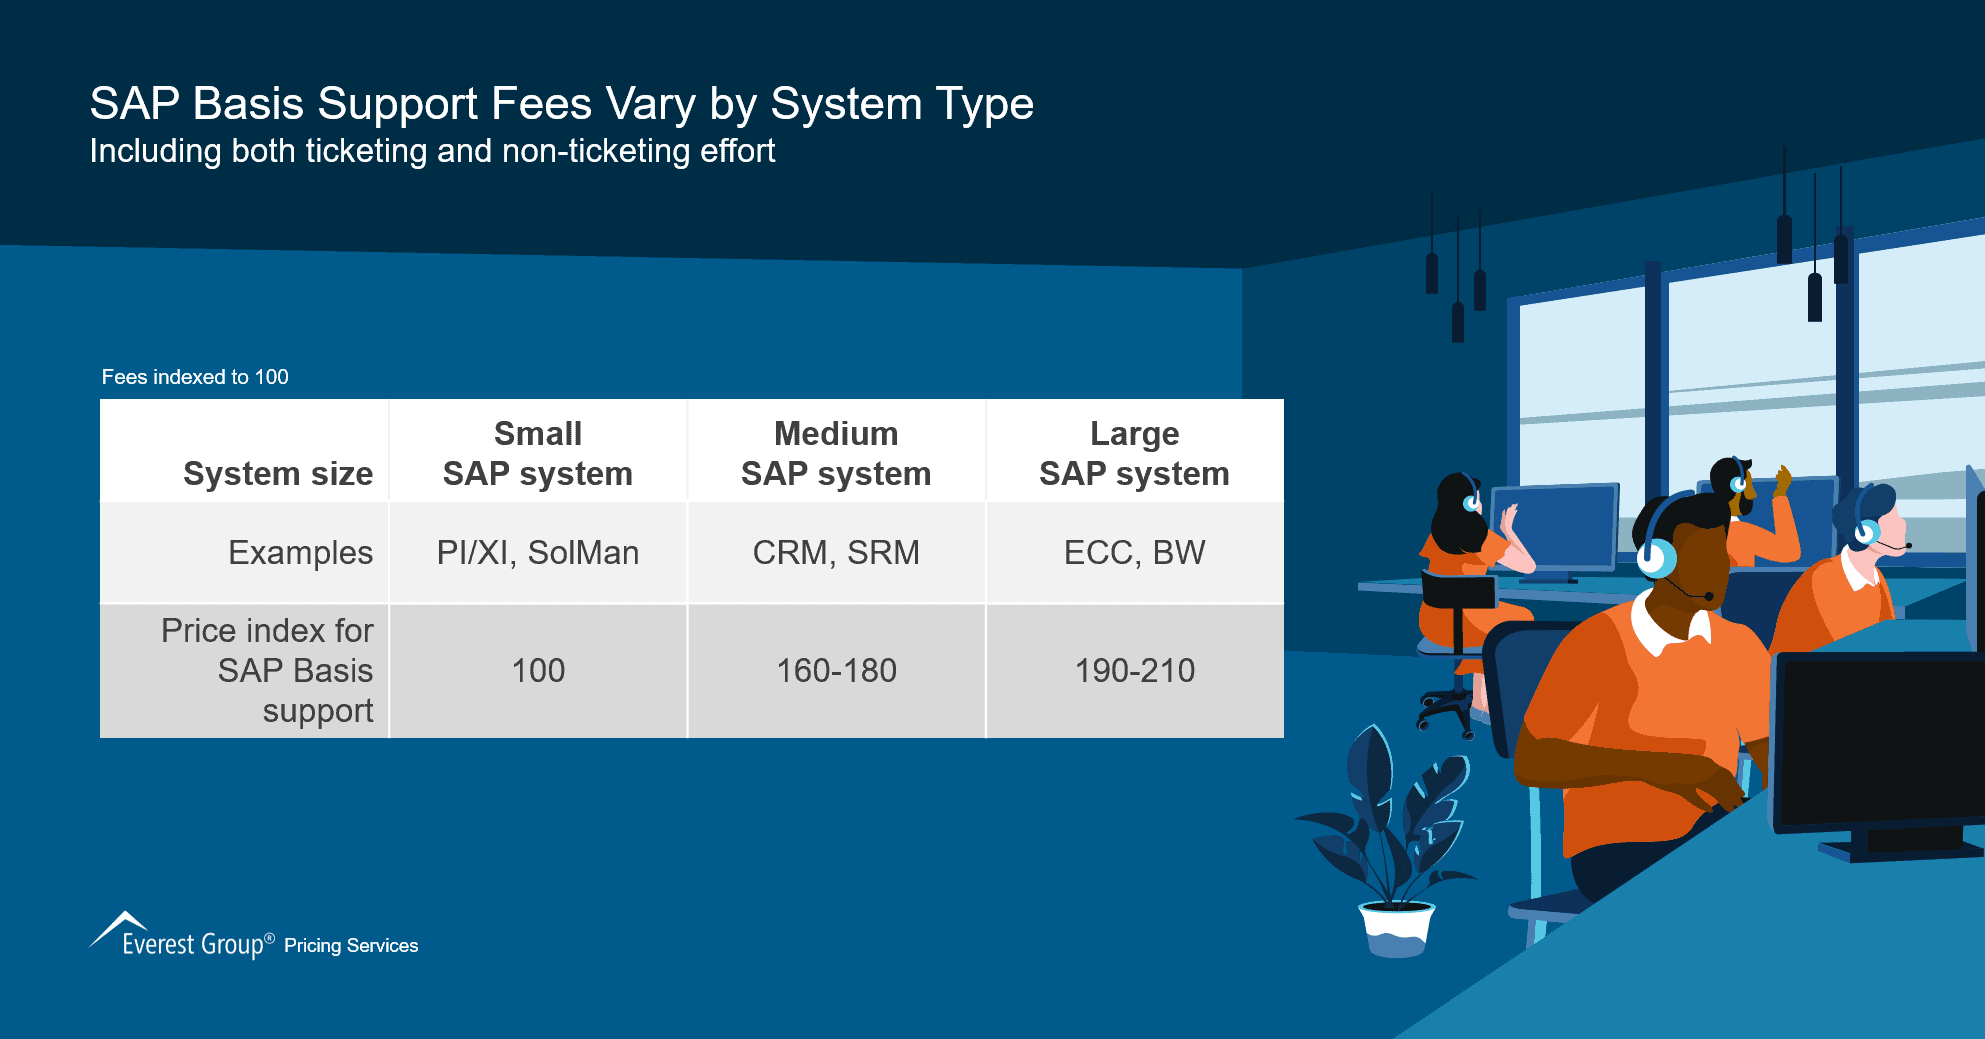 SAP Basis Support Fees Vary by System Type